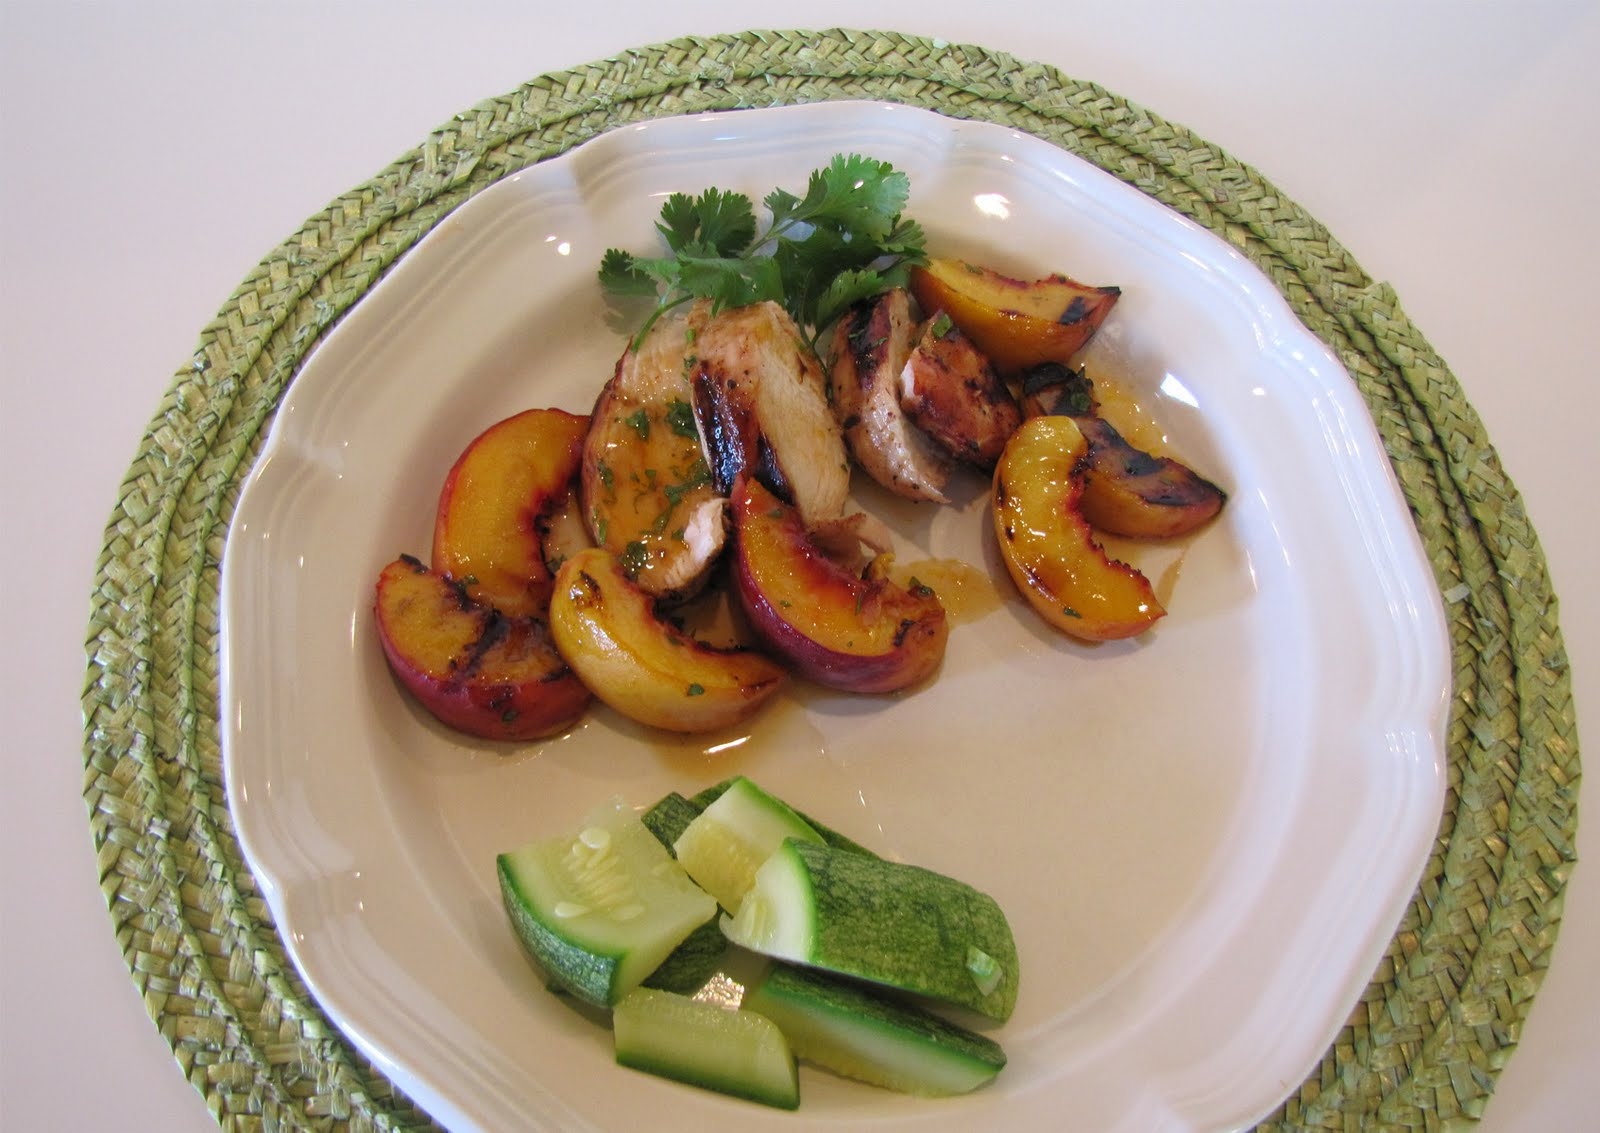 http://3.bp.blogspot.com/_GdiFkQiW8Gg/TE5O_YYpjEI/AAAAAAAACBg/p4pi1s0uv9k/s1600/Chicken+and+Peaches+3.jpg